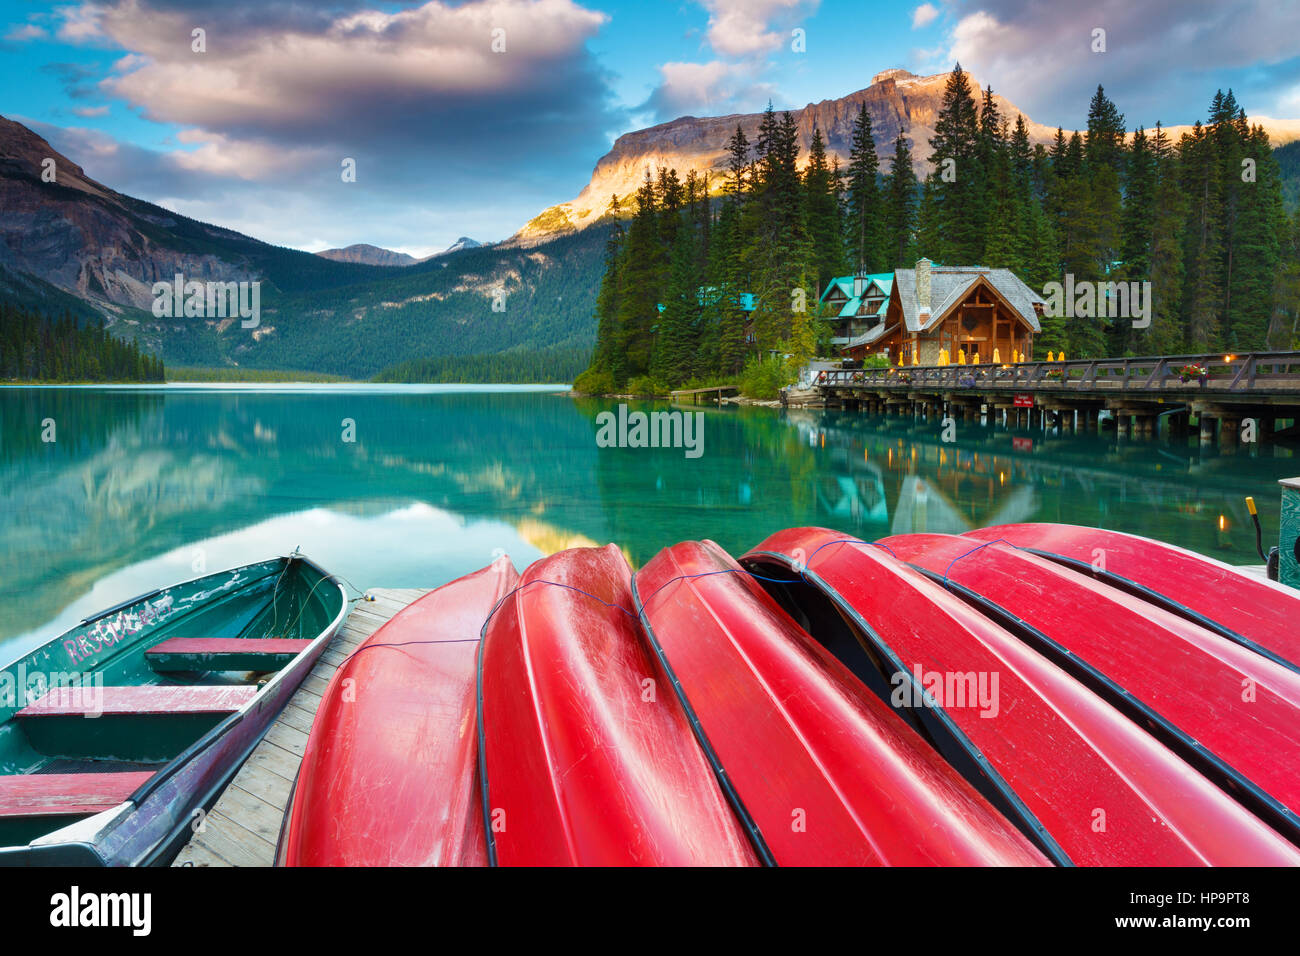 Early evening at Emerald Lake in Yoho National Park, British Columbia, Canada. Emerald Lake is a major tourism destination - Stock Image